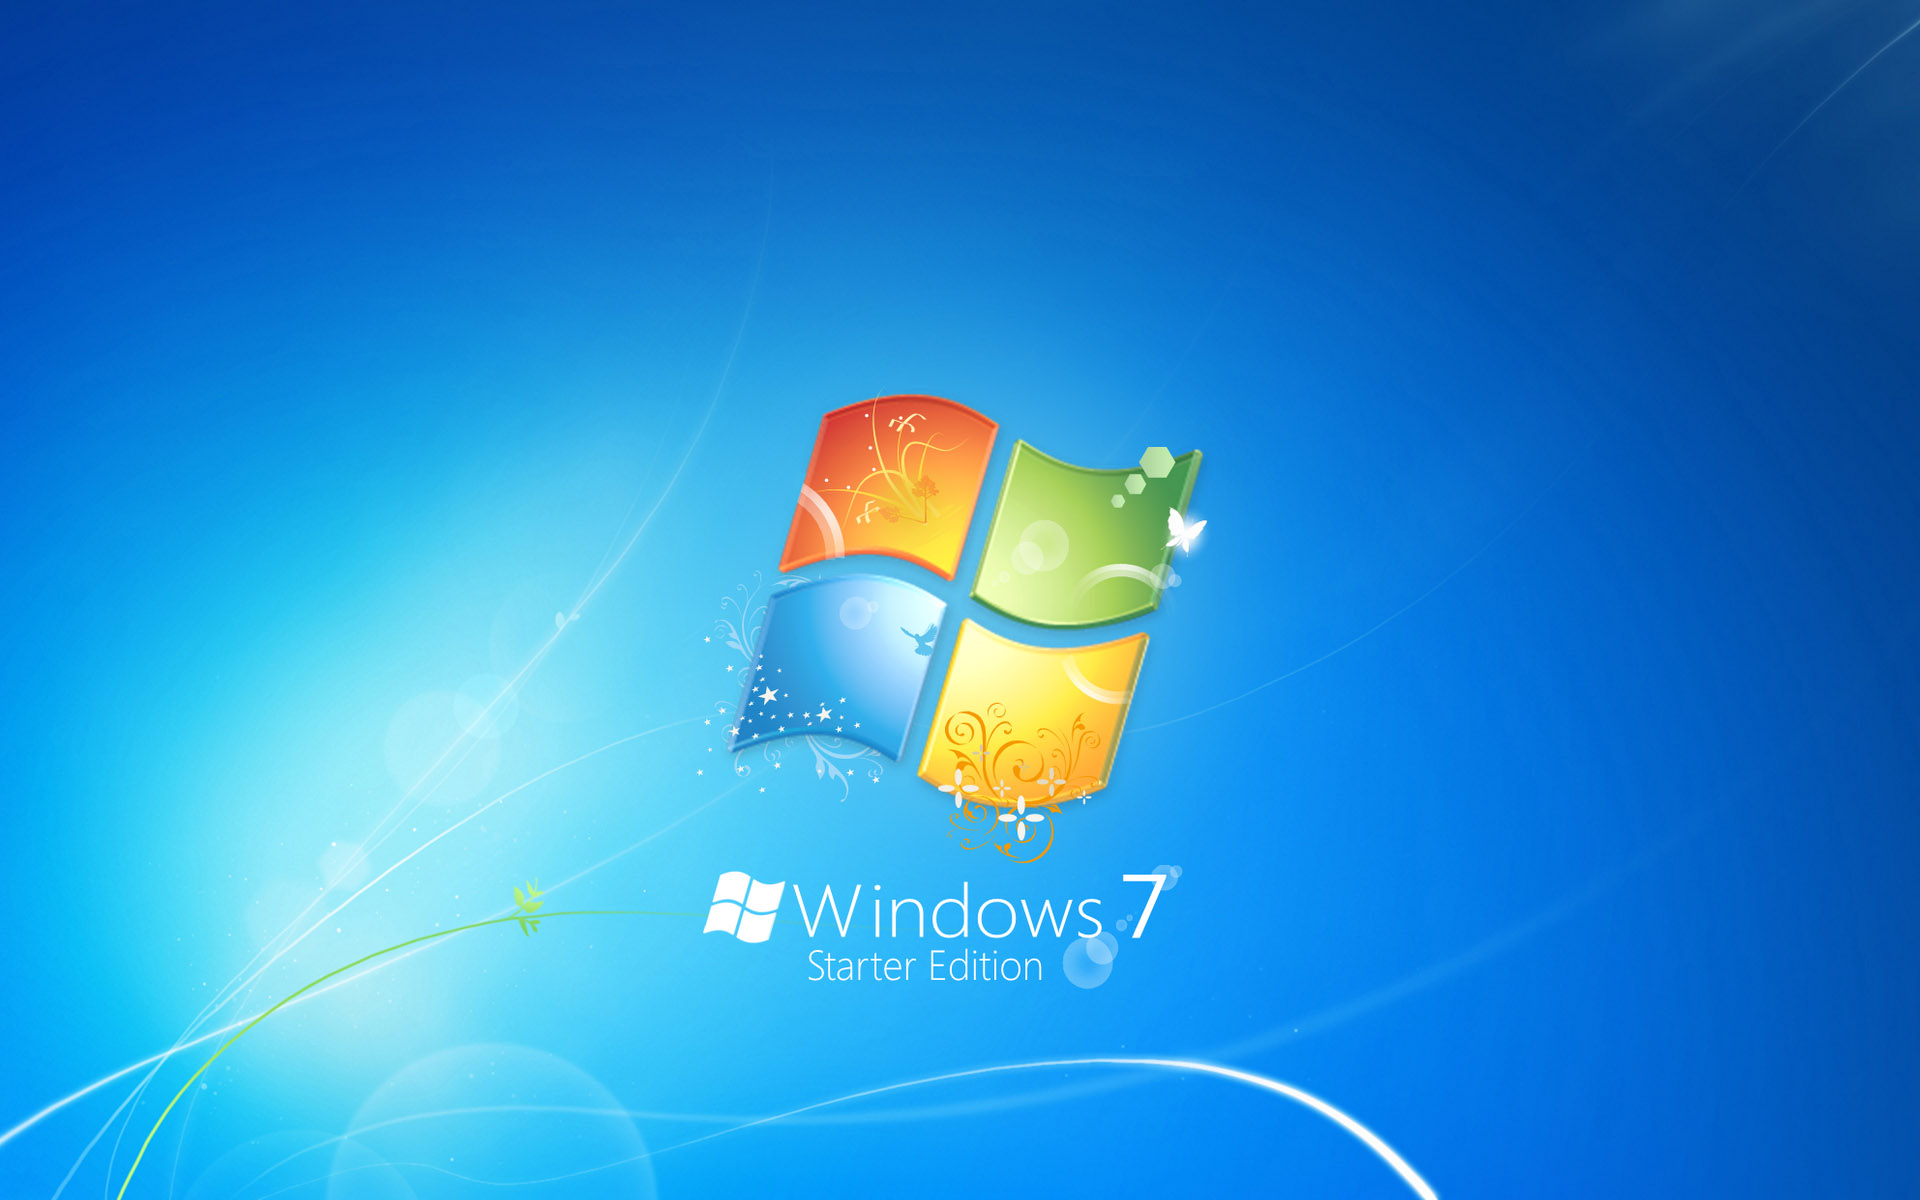 Windows 7 Starter Edition Wallpapers HD Wallpapers 1920x1200